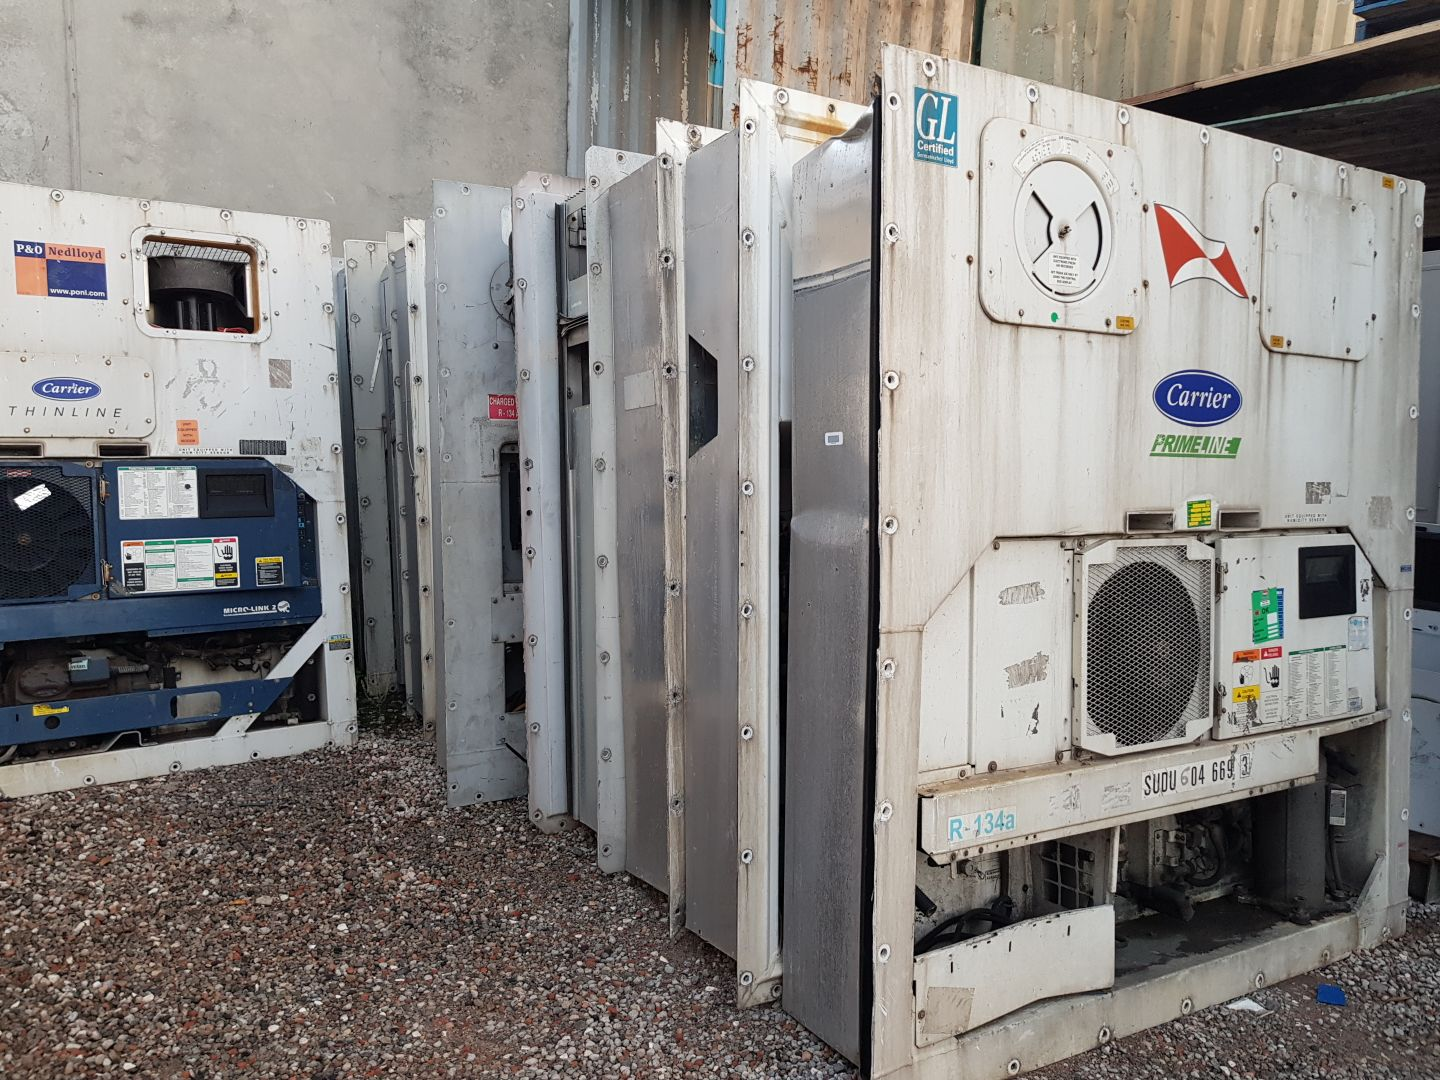 Fully serviced 3 phase refrigerated shipping container machinery, Carrier or Thermo King units available with 6 months warranty.